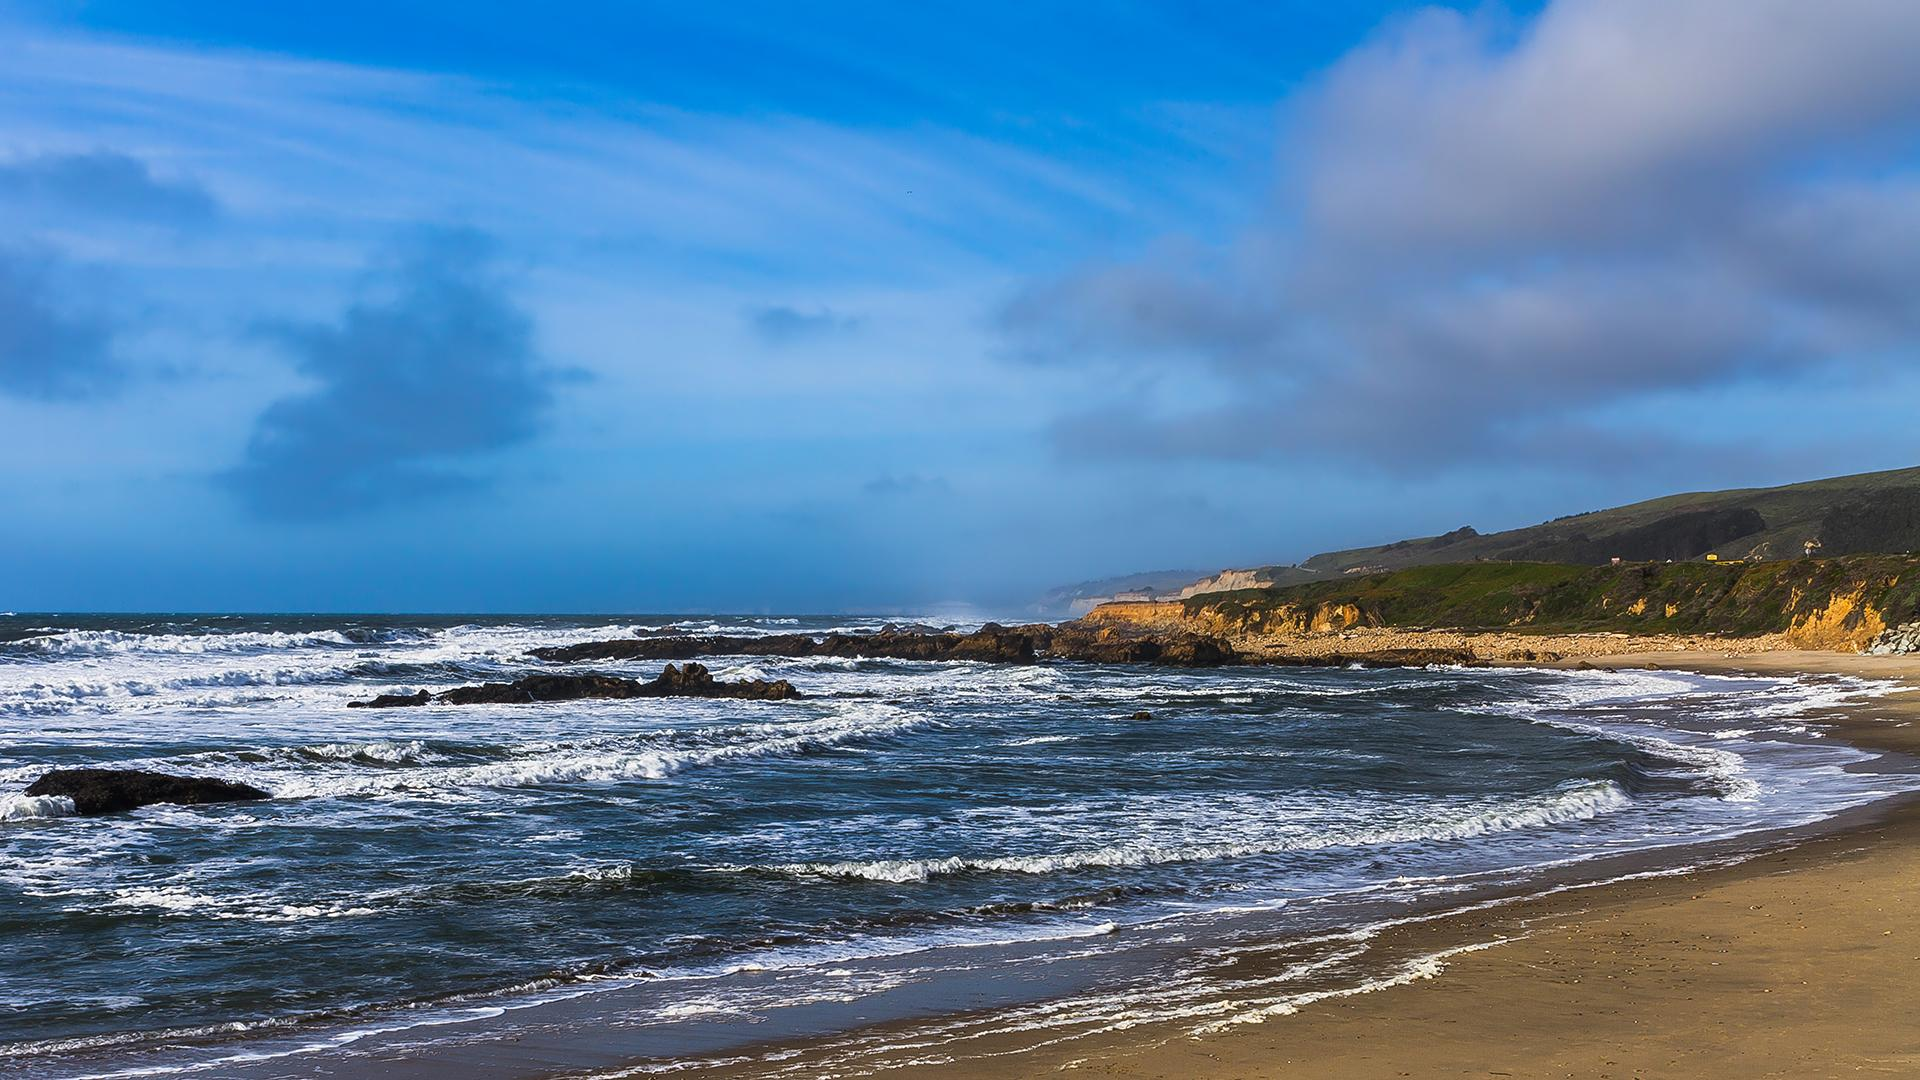 California-coastline-looking-north-from-Beach-Hollow-State-Beach-San-Mateo-County-1920x1080OC-N-wallpaper-wp3403619